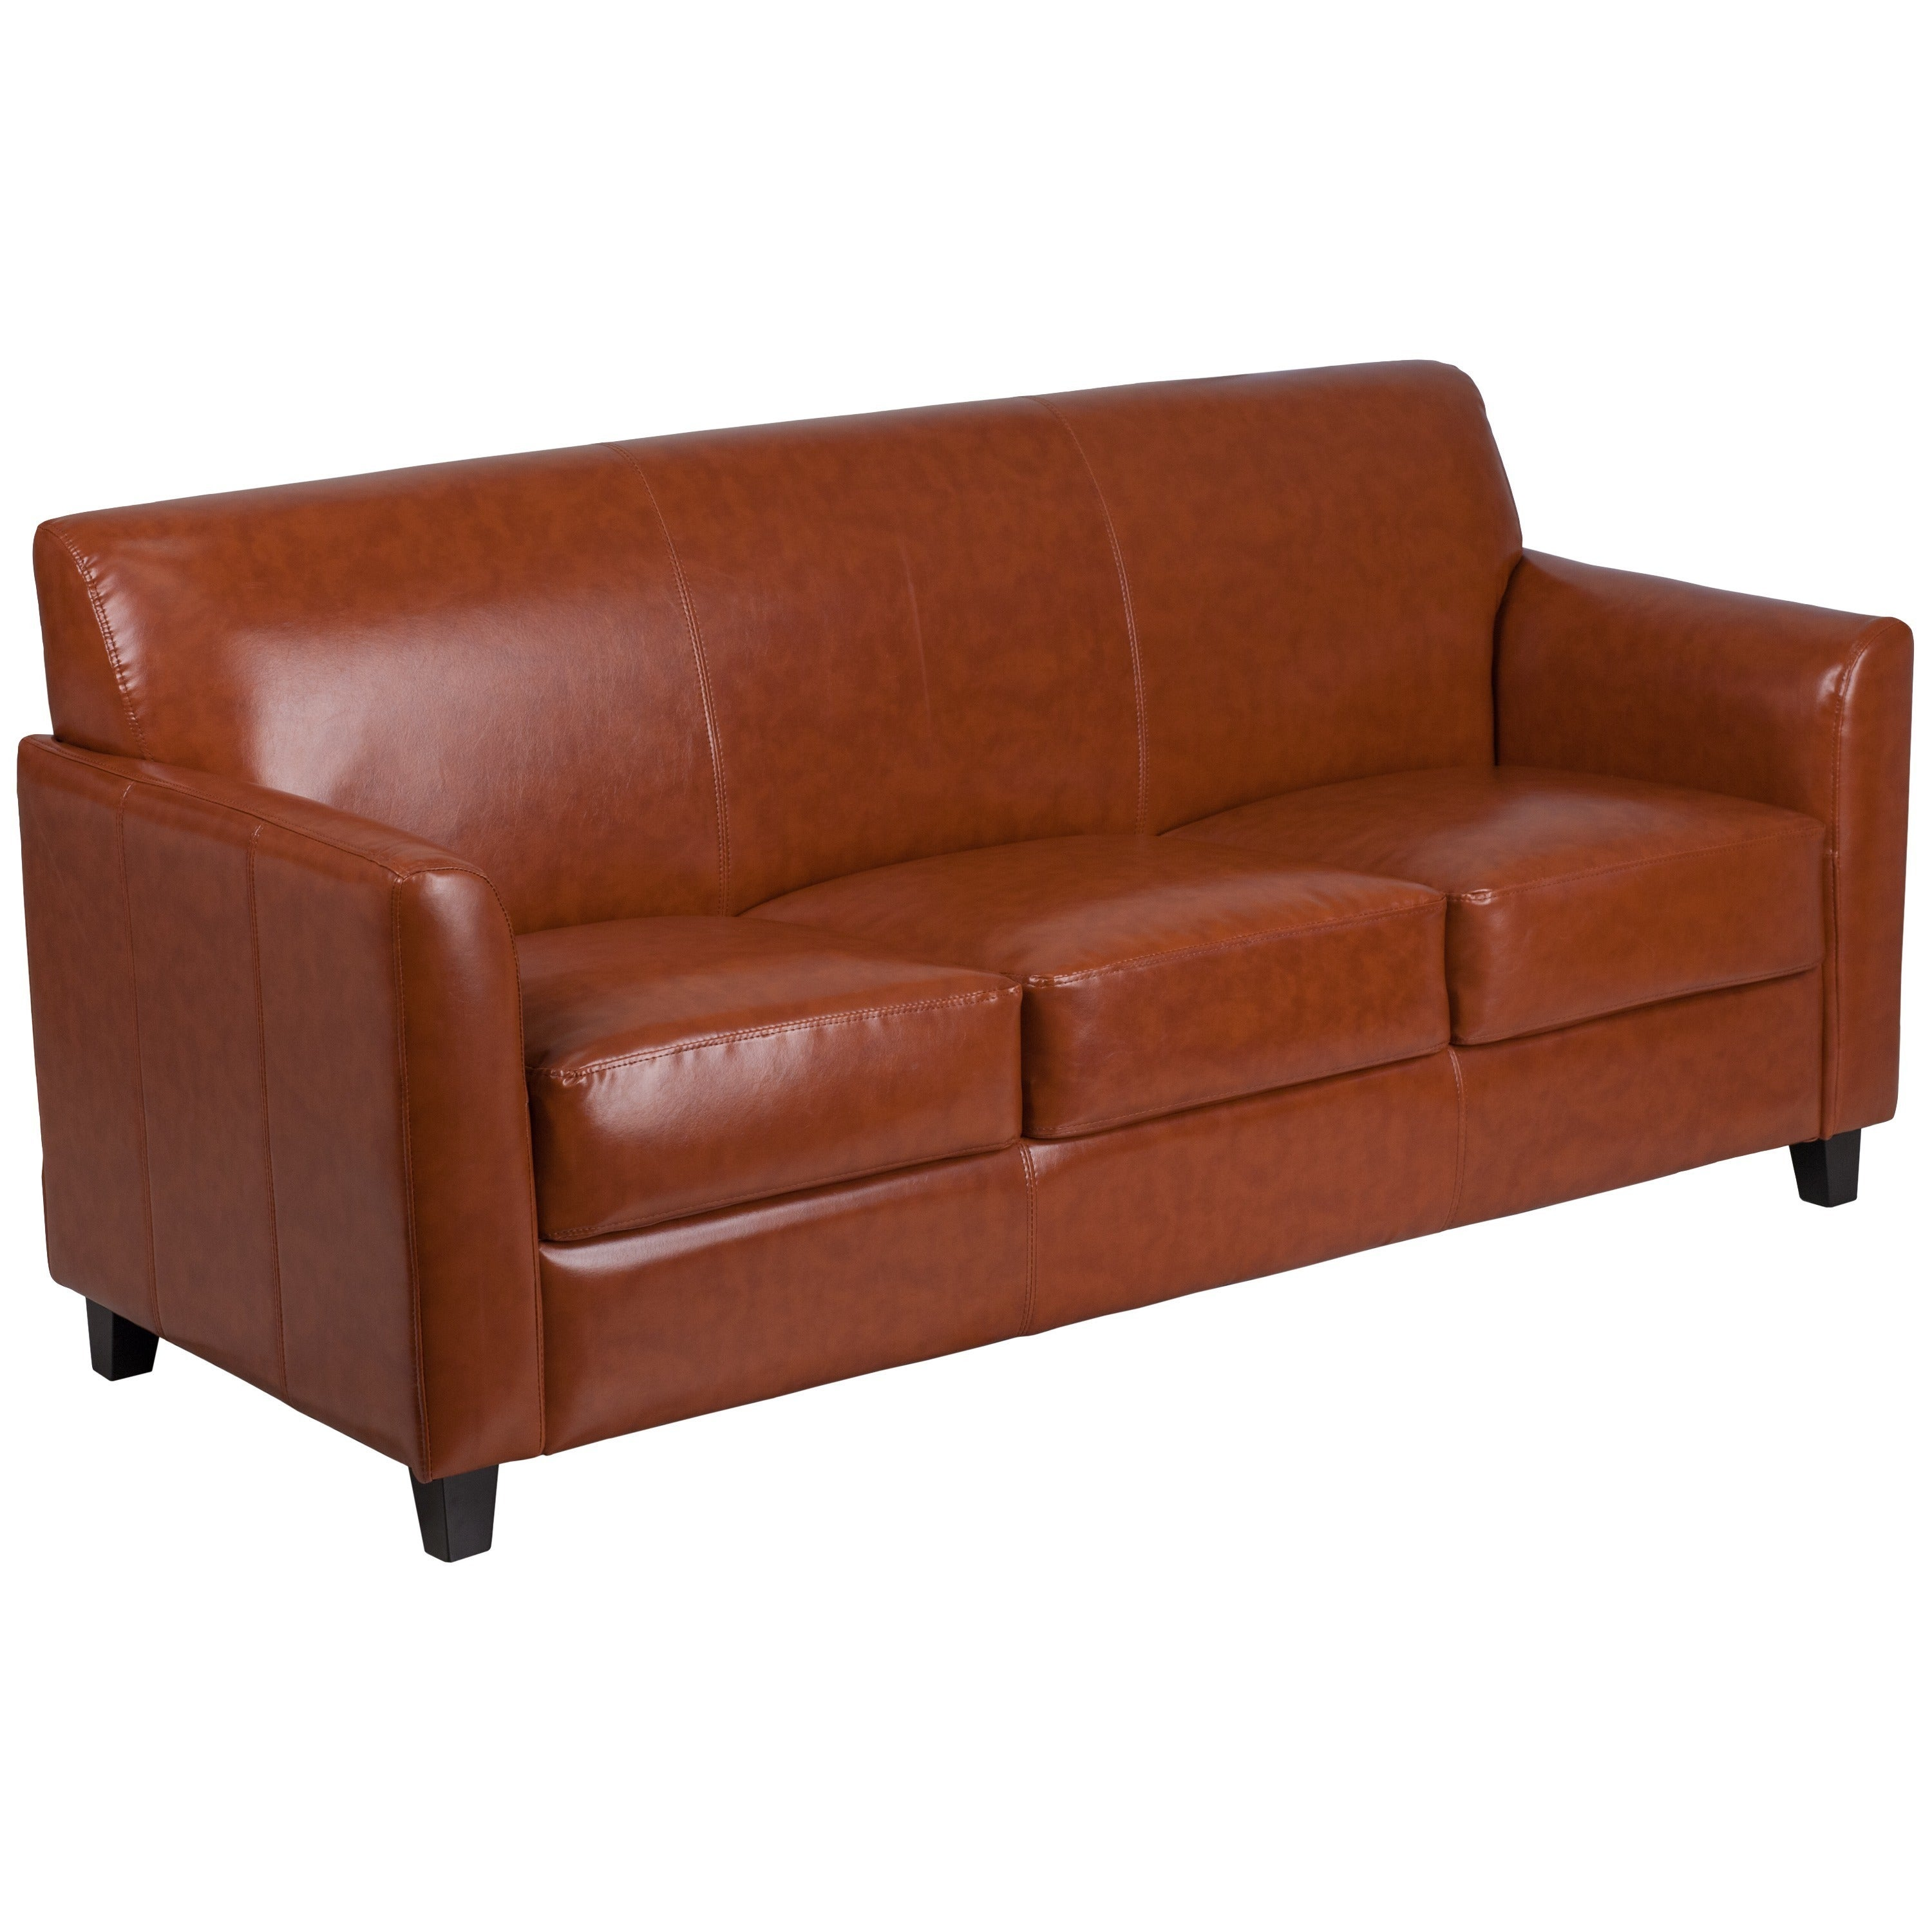 Copper Grove Wells Flash Furniture Diplomat Series Bonded Leather Sofa